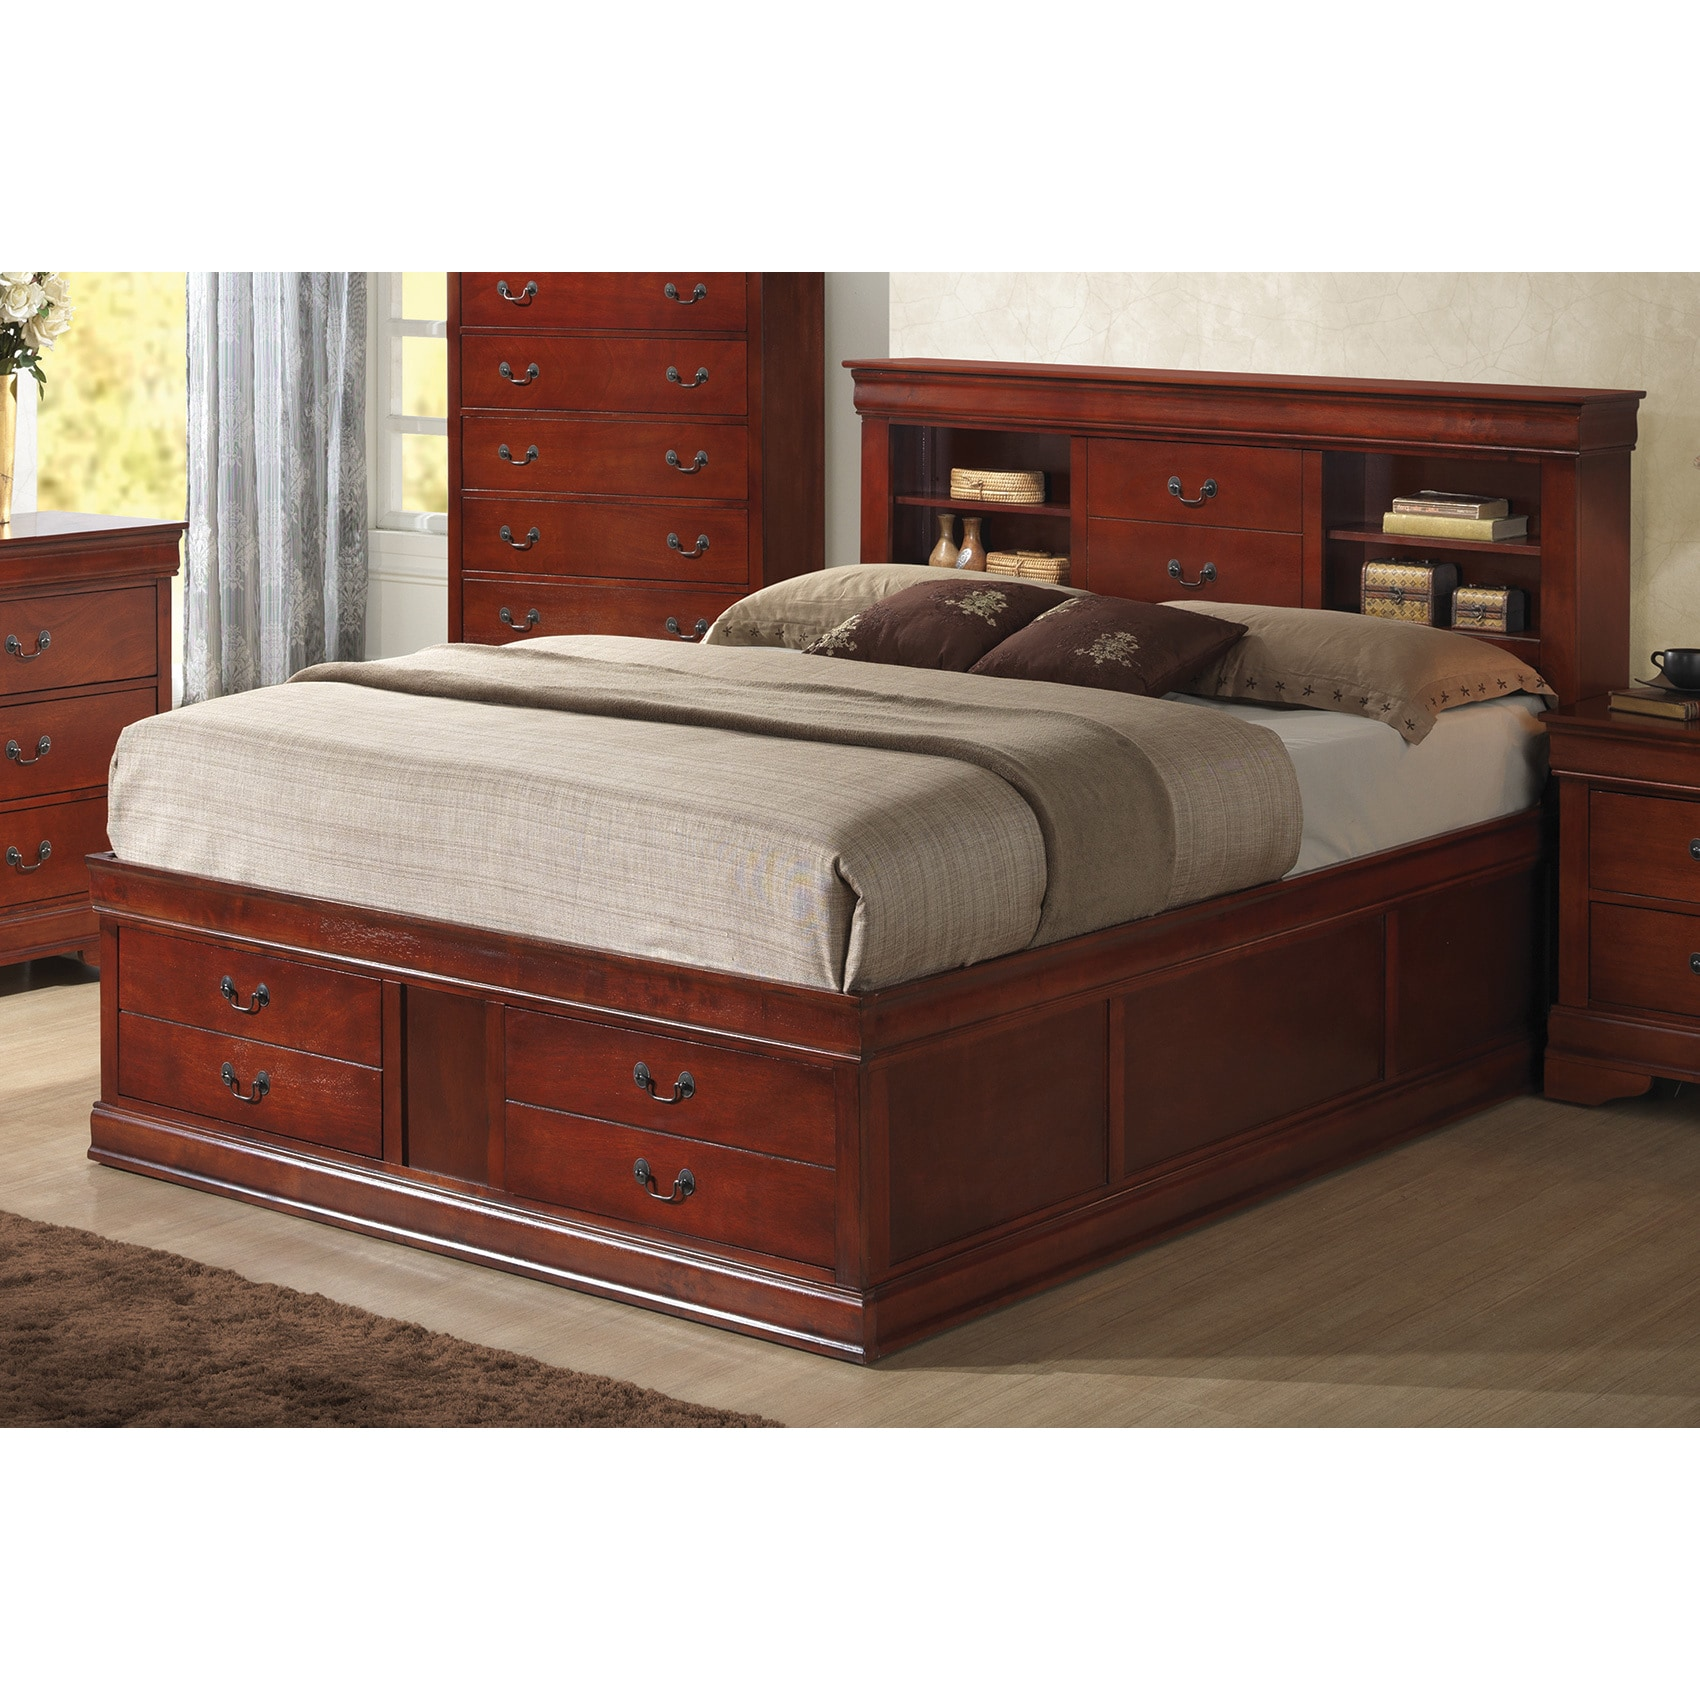 Coaster Furniture Louis Philippe Cherry Storage Bed (Quee...